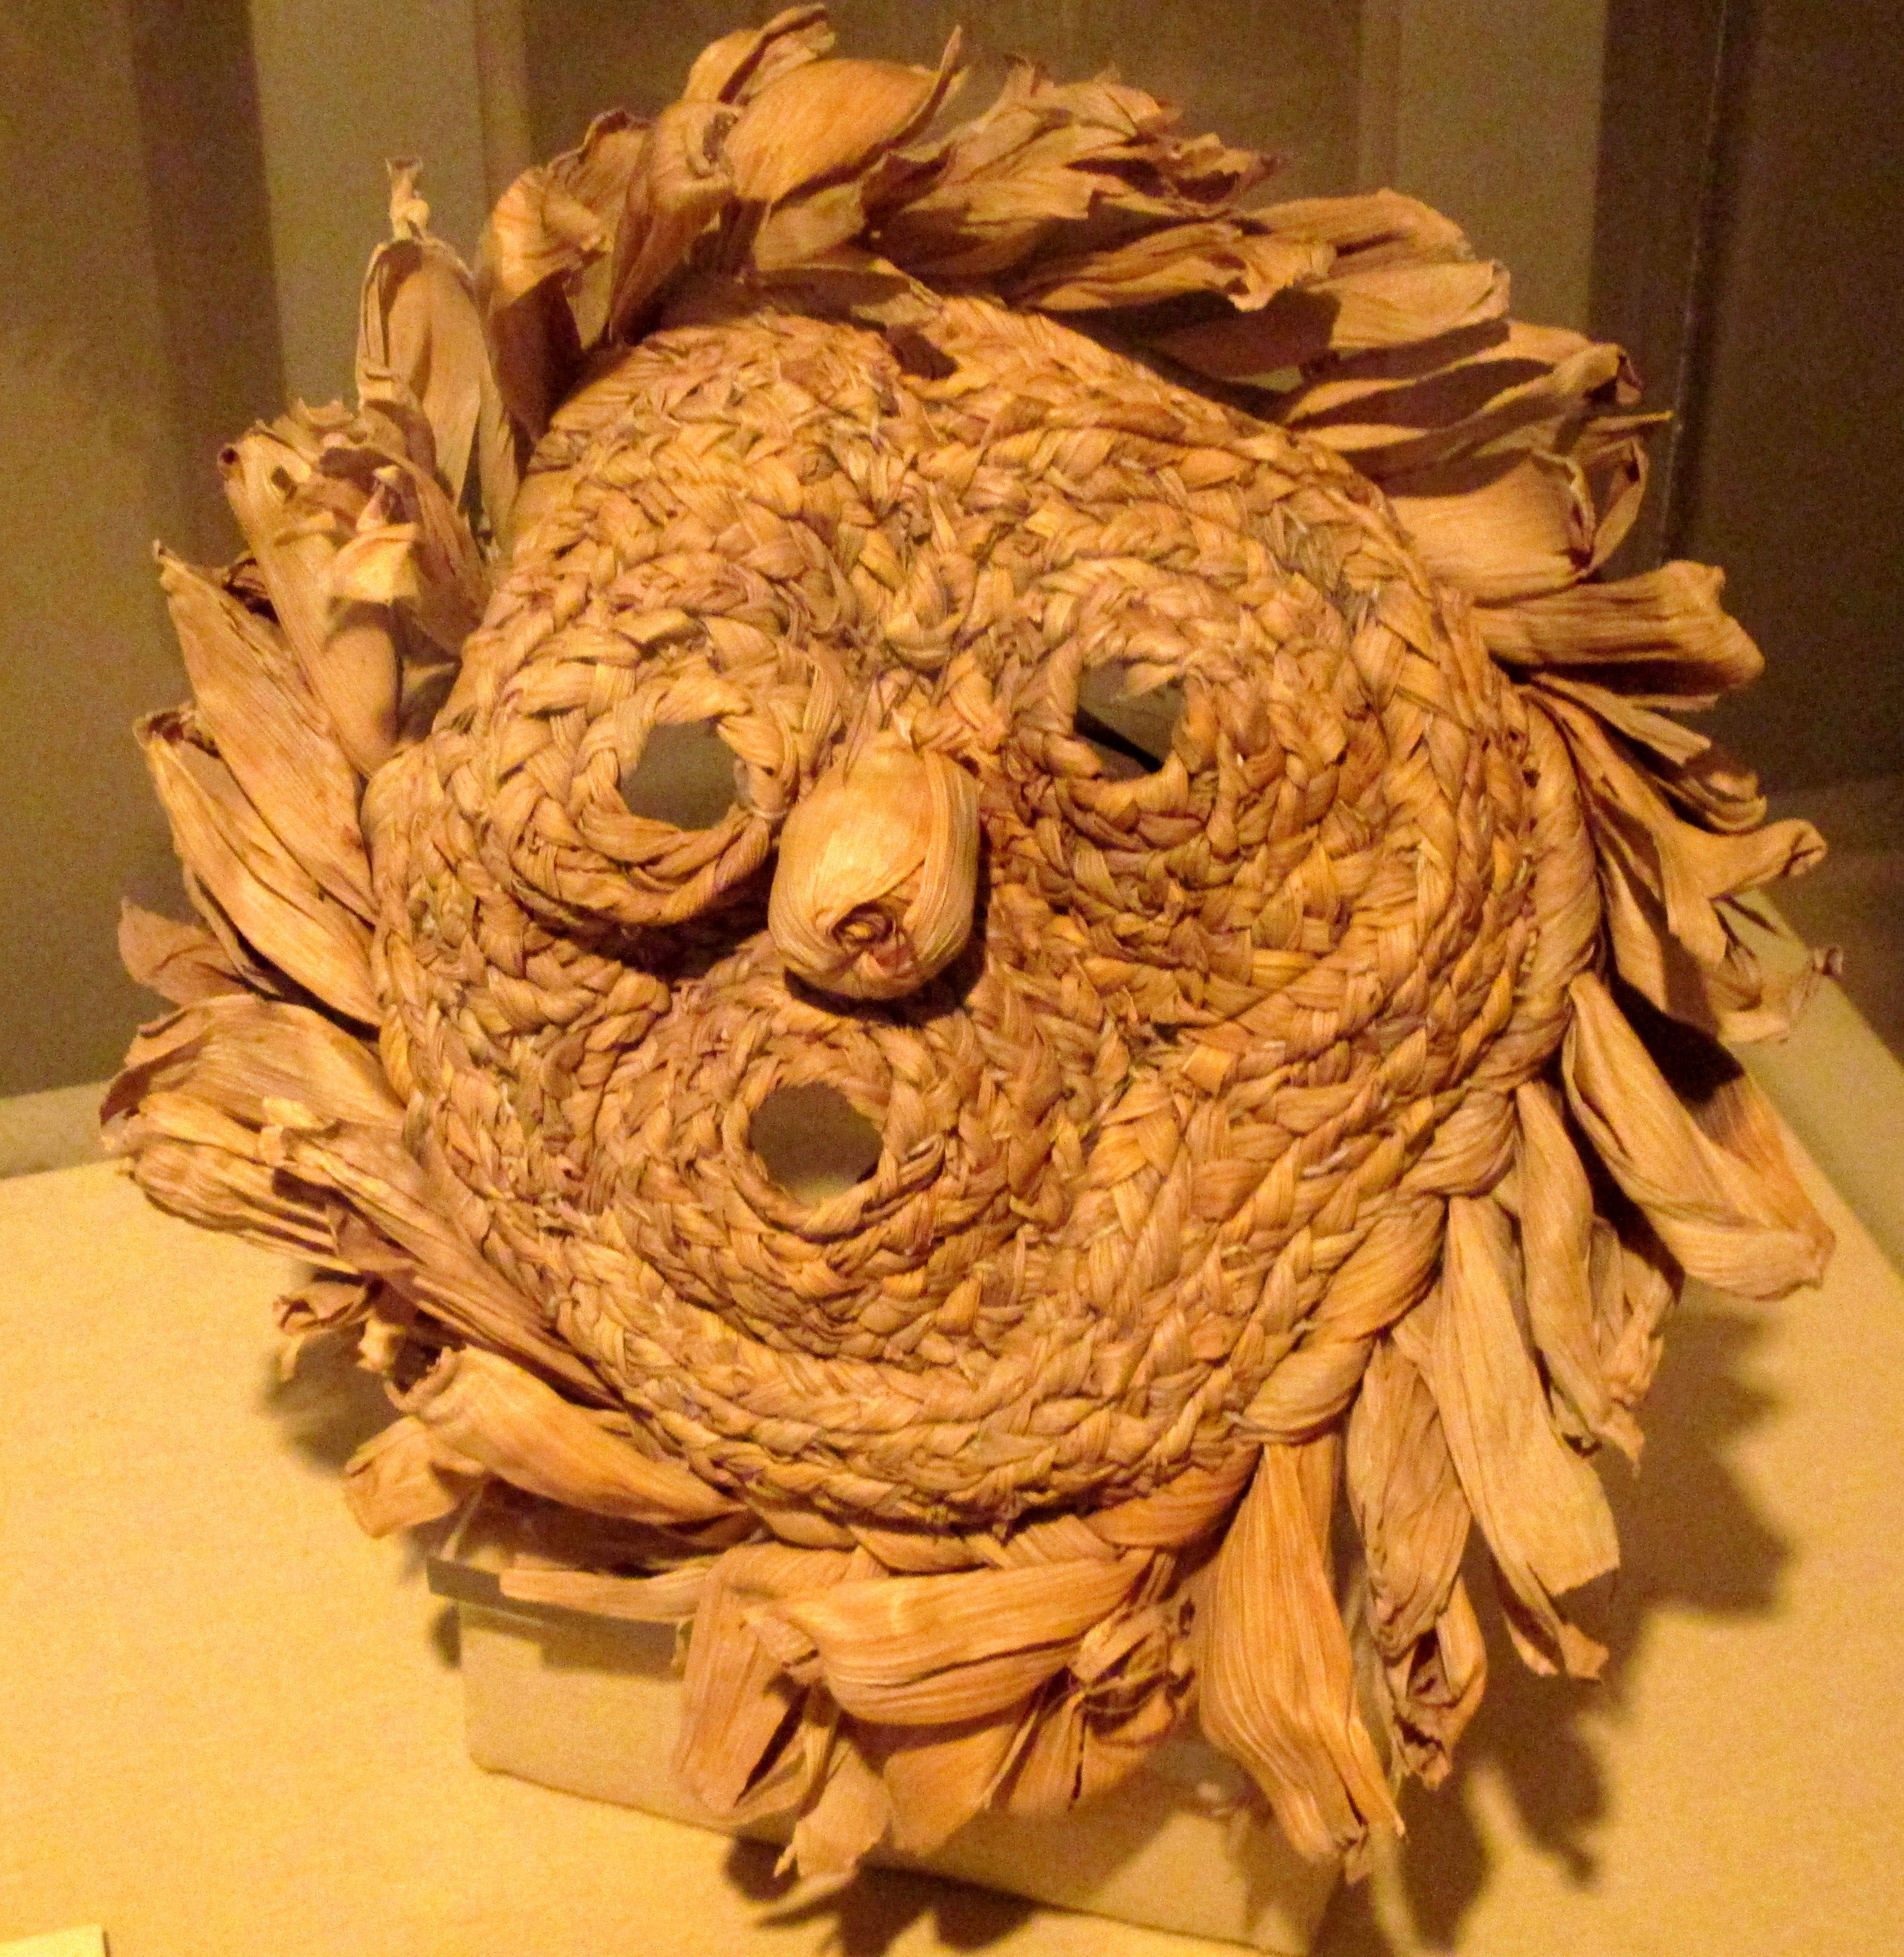 """Early 20th Century Iroquoian (First Nations) Mask at Château Ramezay, Montreal - From the curators' comments: """"Masks represent the spiritual beings they depict and take on their power. Certain ritual objects, such as masks and medicine bags, were considered sacred. Thus, they could be seen by initiates only: shamans, healers and seers or when they were used in special ceremonies."""""""